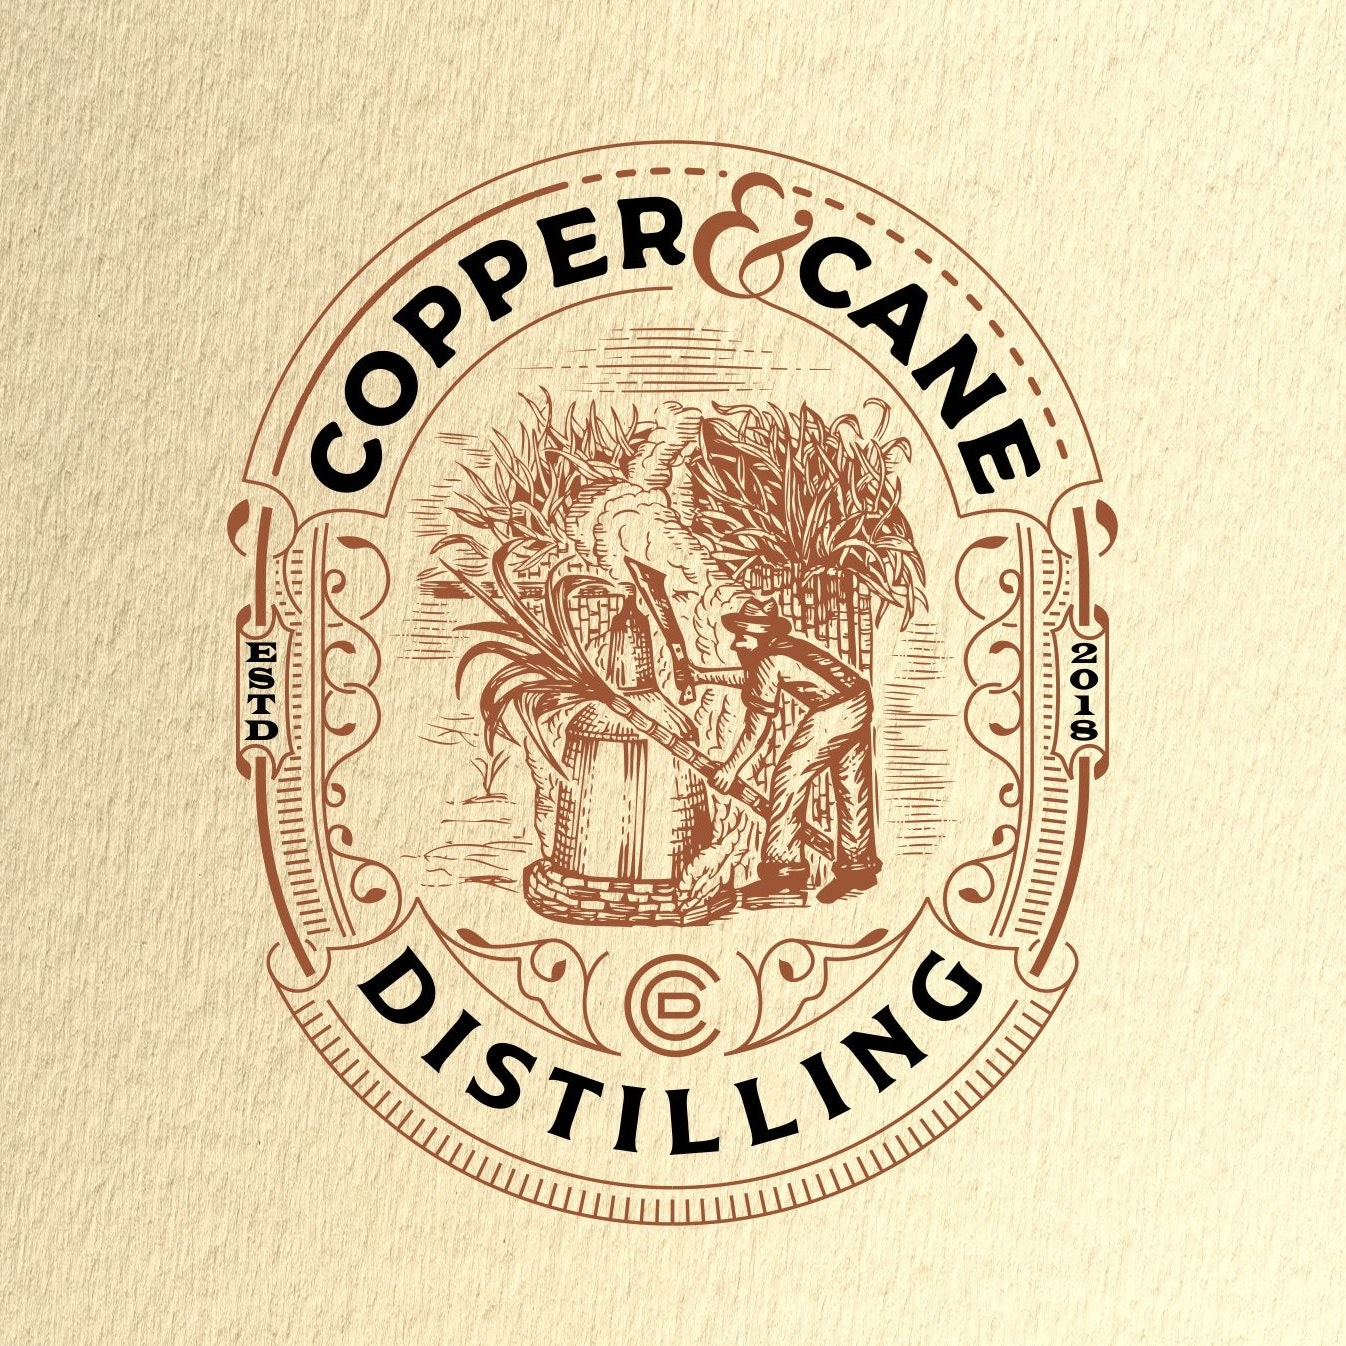 Copper & Cane Distilling logo